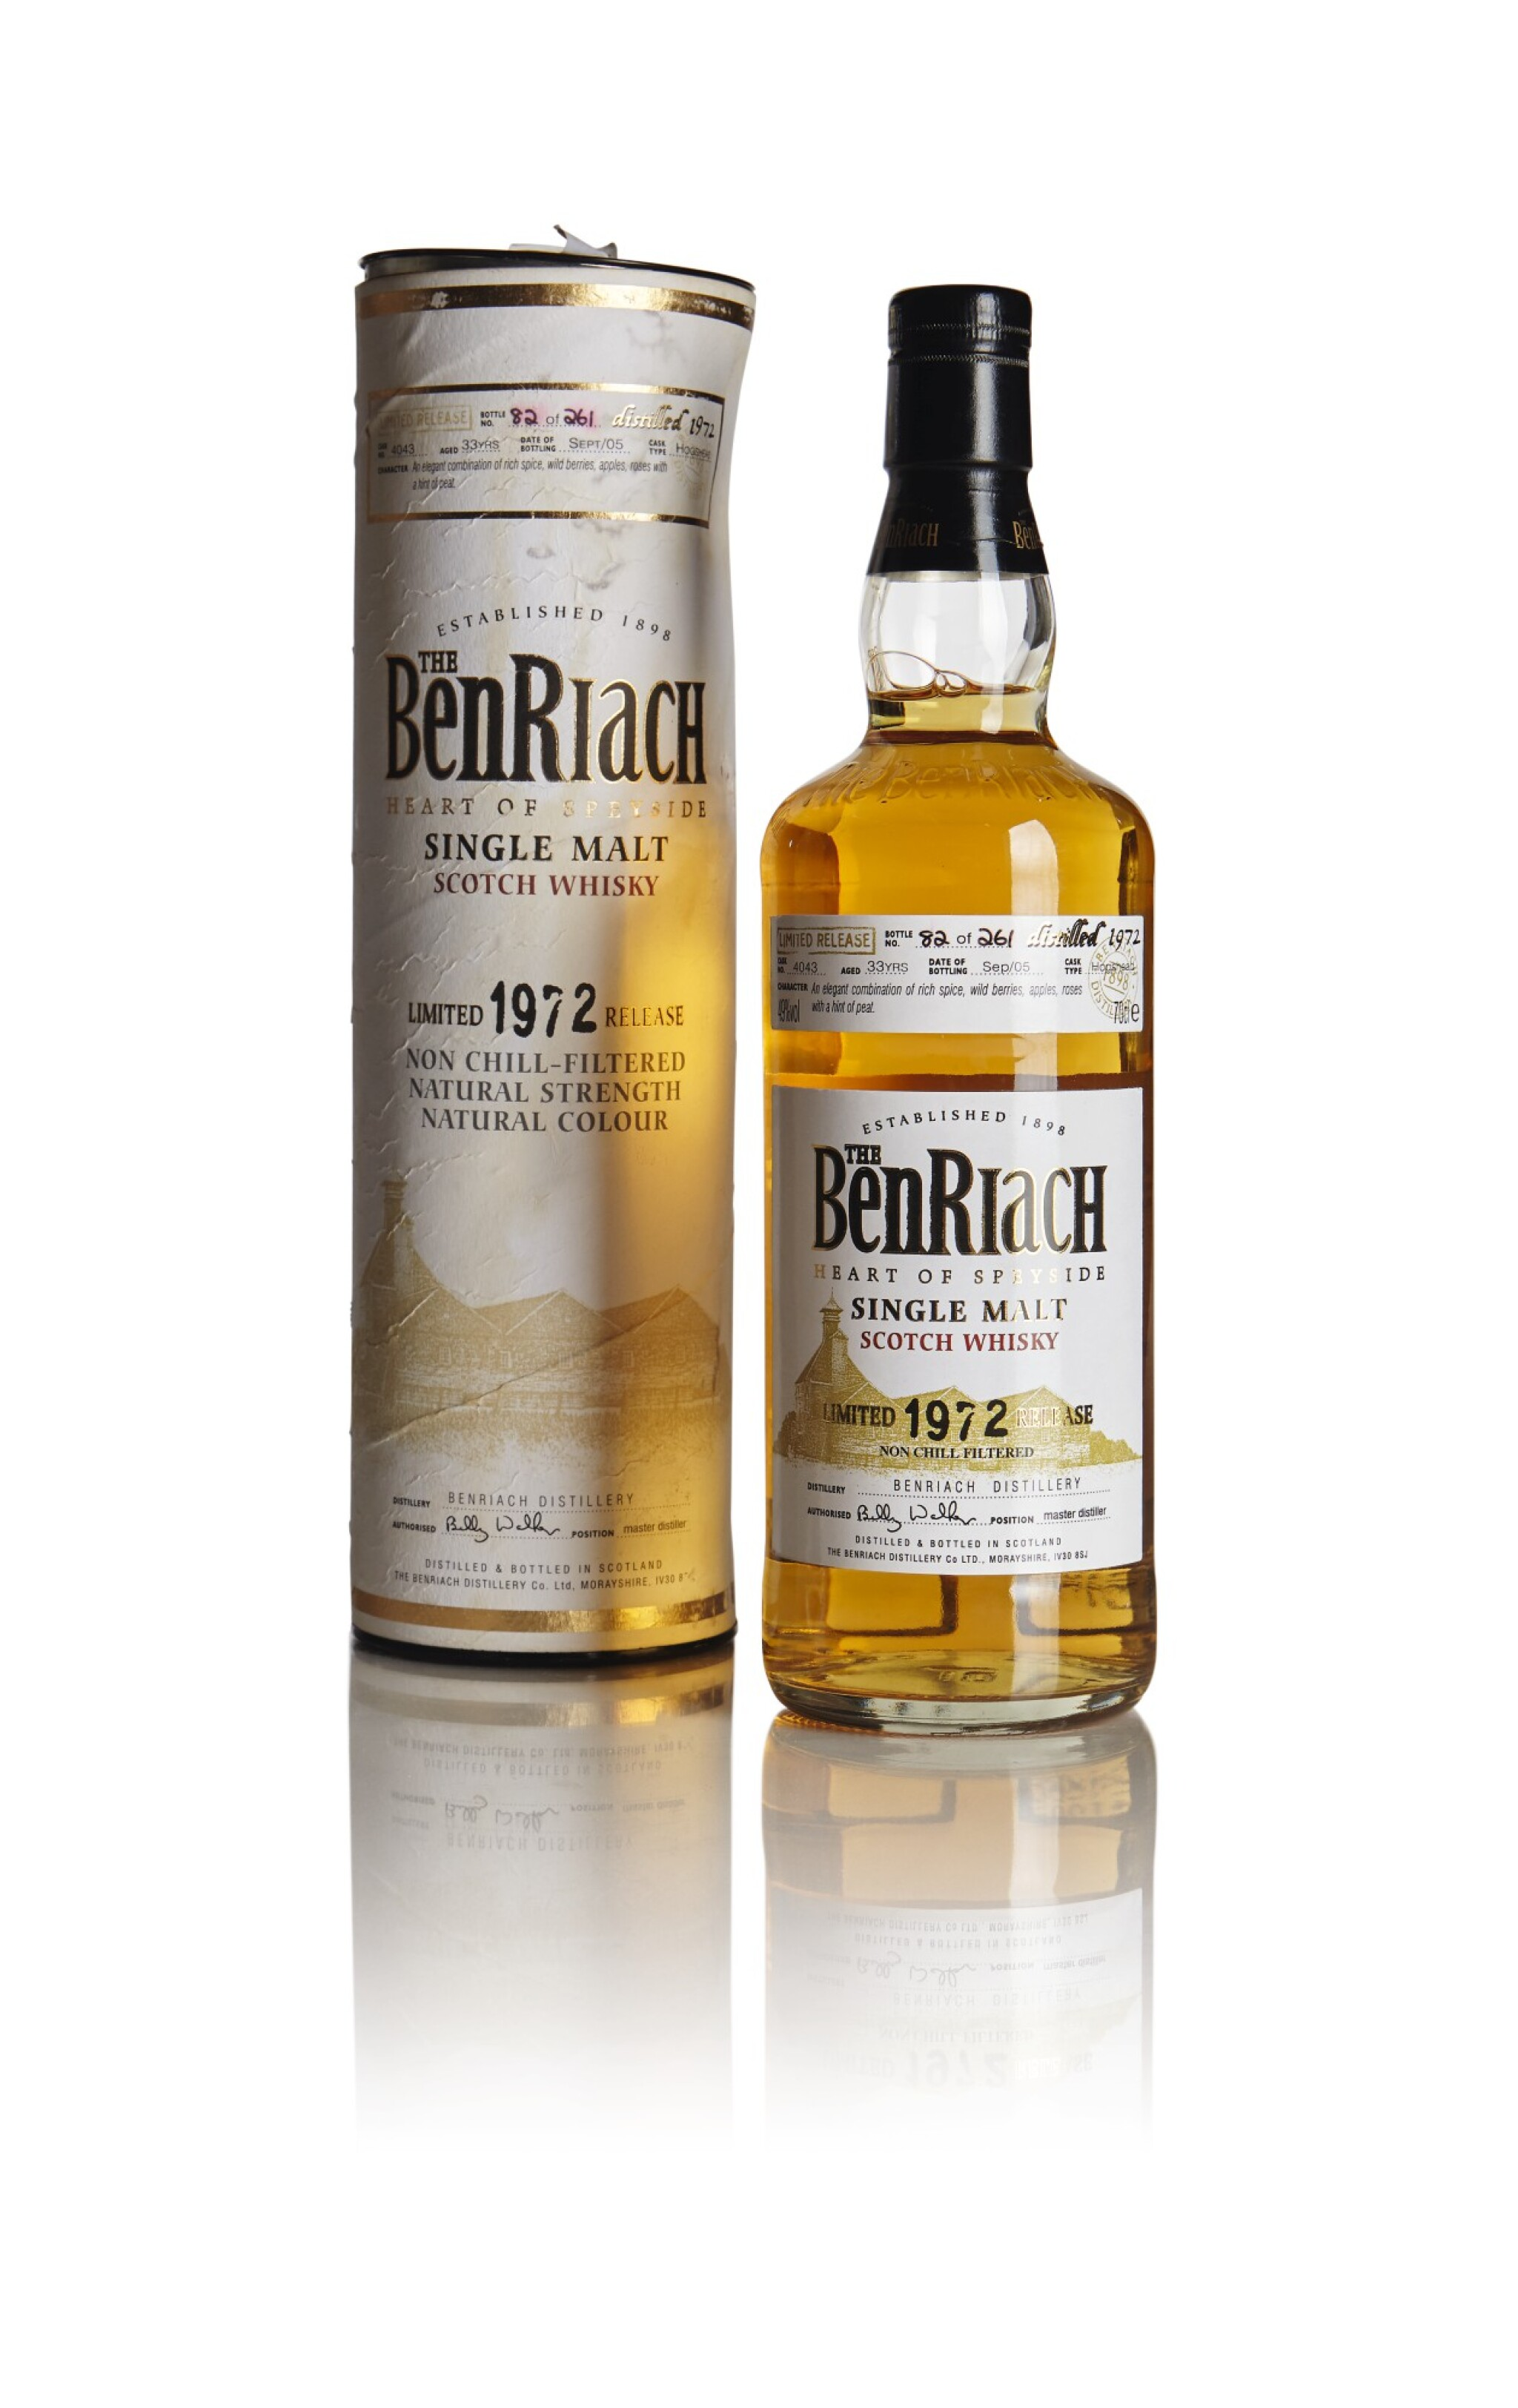 THE BENRIACH ORIGINAL BOTTLING 33 YEAR OLD 49.0 ABV 1972